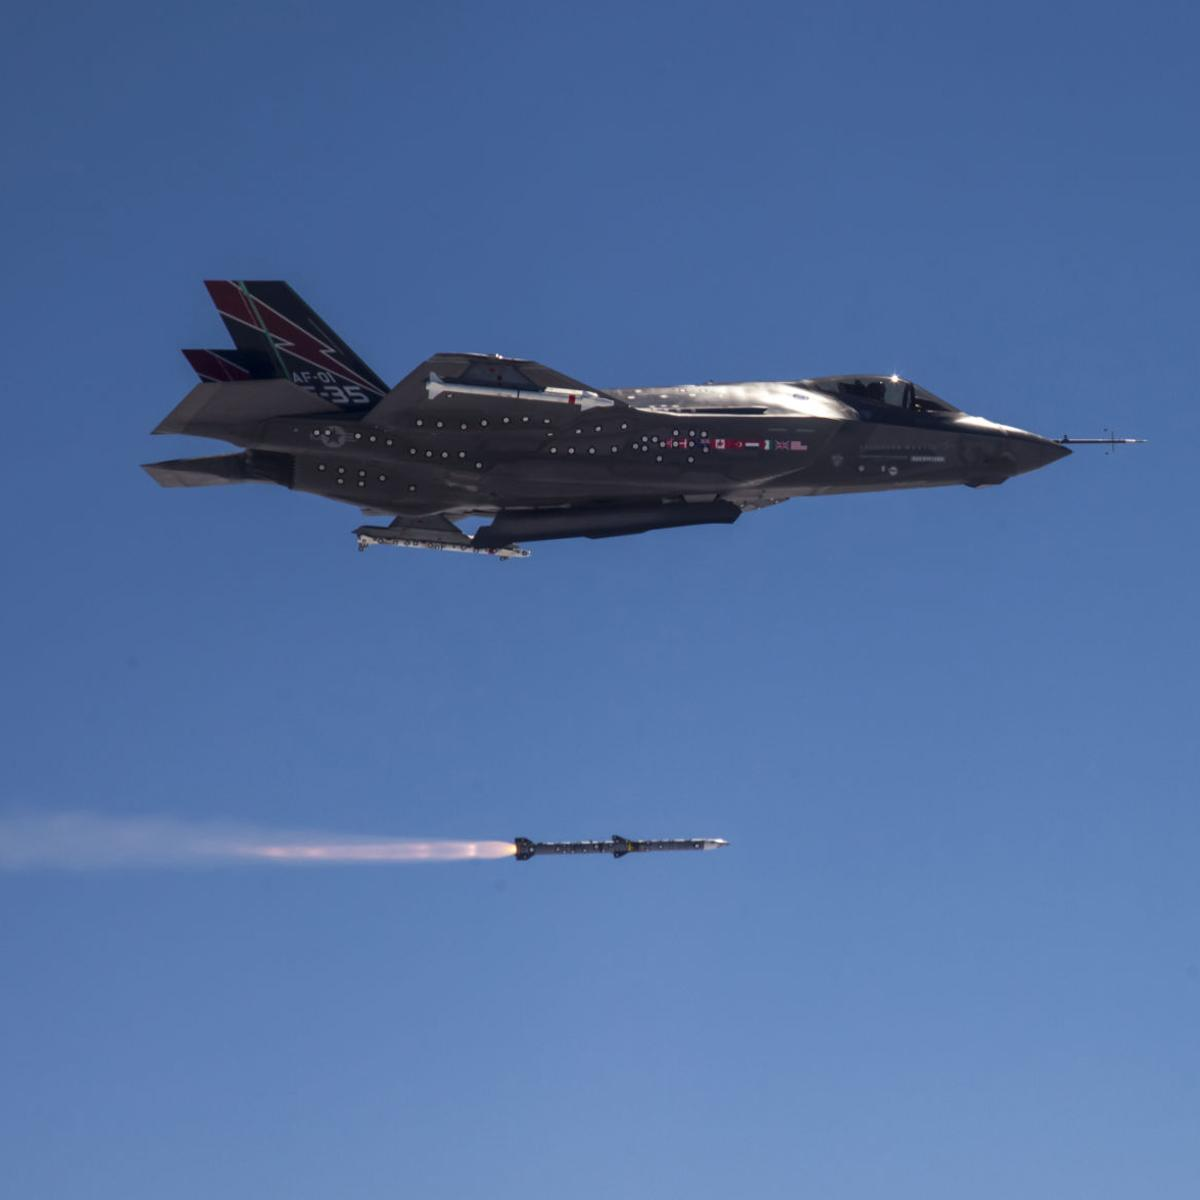 Raytheon wins $180M for missile work | News About Tucson and ...